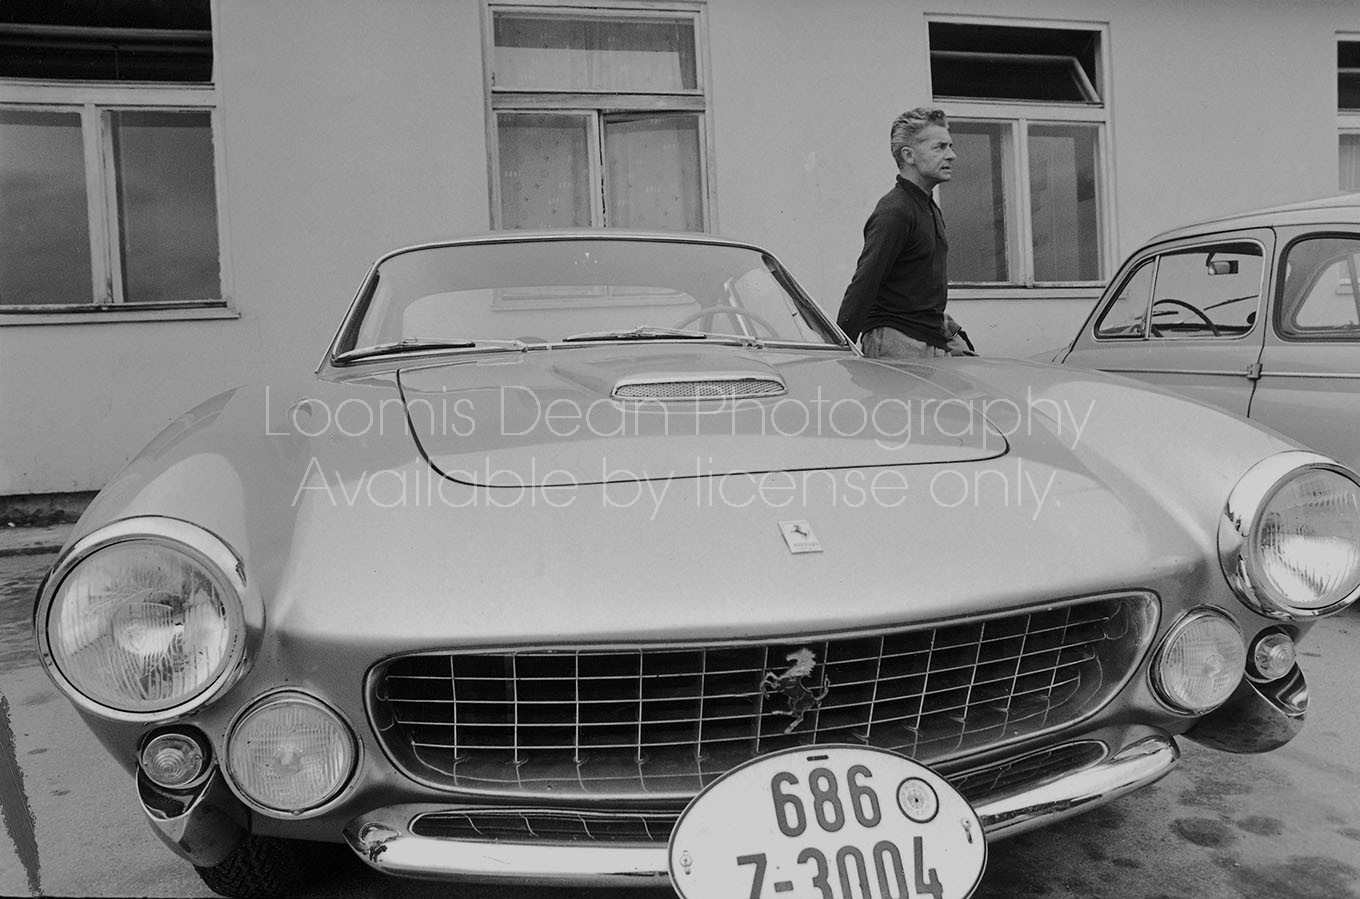 Conductor Herbert von Karajan getting out of his Ferrari at the airport, where he flies planes.  [Scanned from contact sheet.]